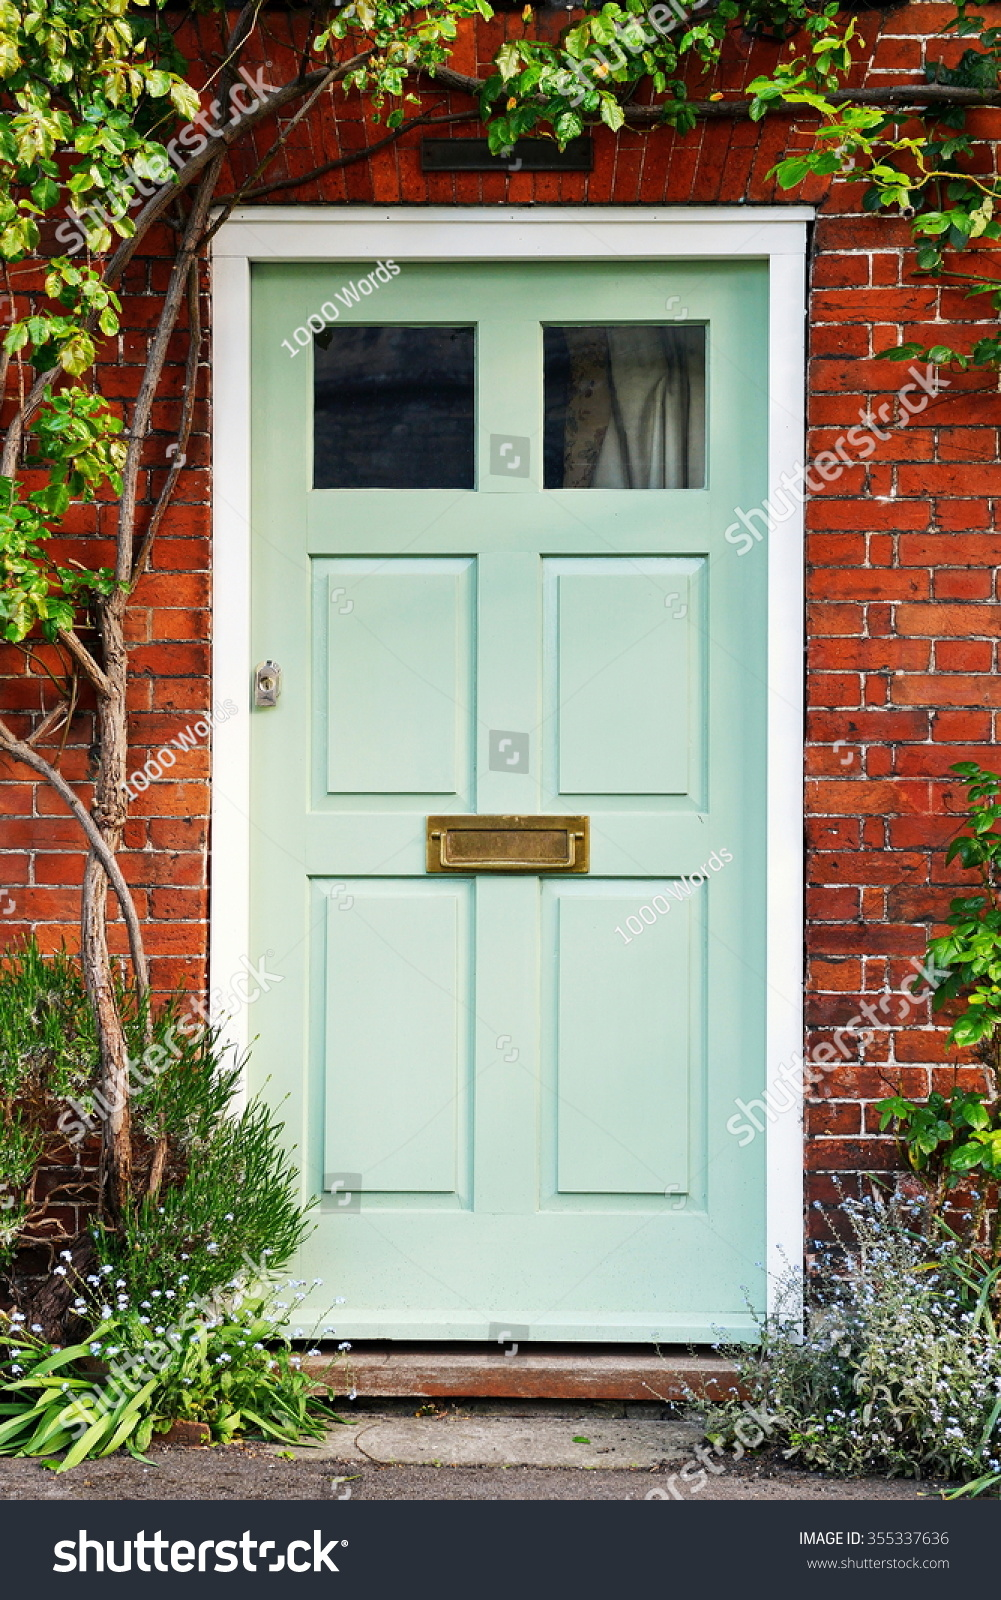 Front door colors for red brick house - View Of A Beautiful Front Door Of A Red Brick House 355337636